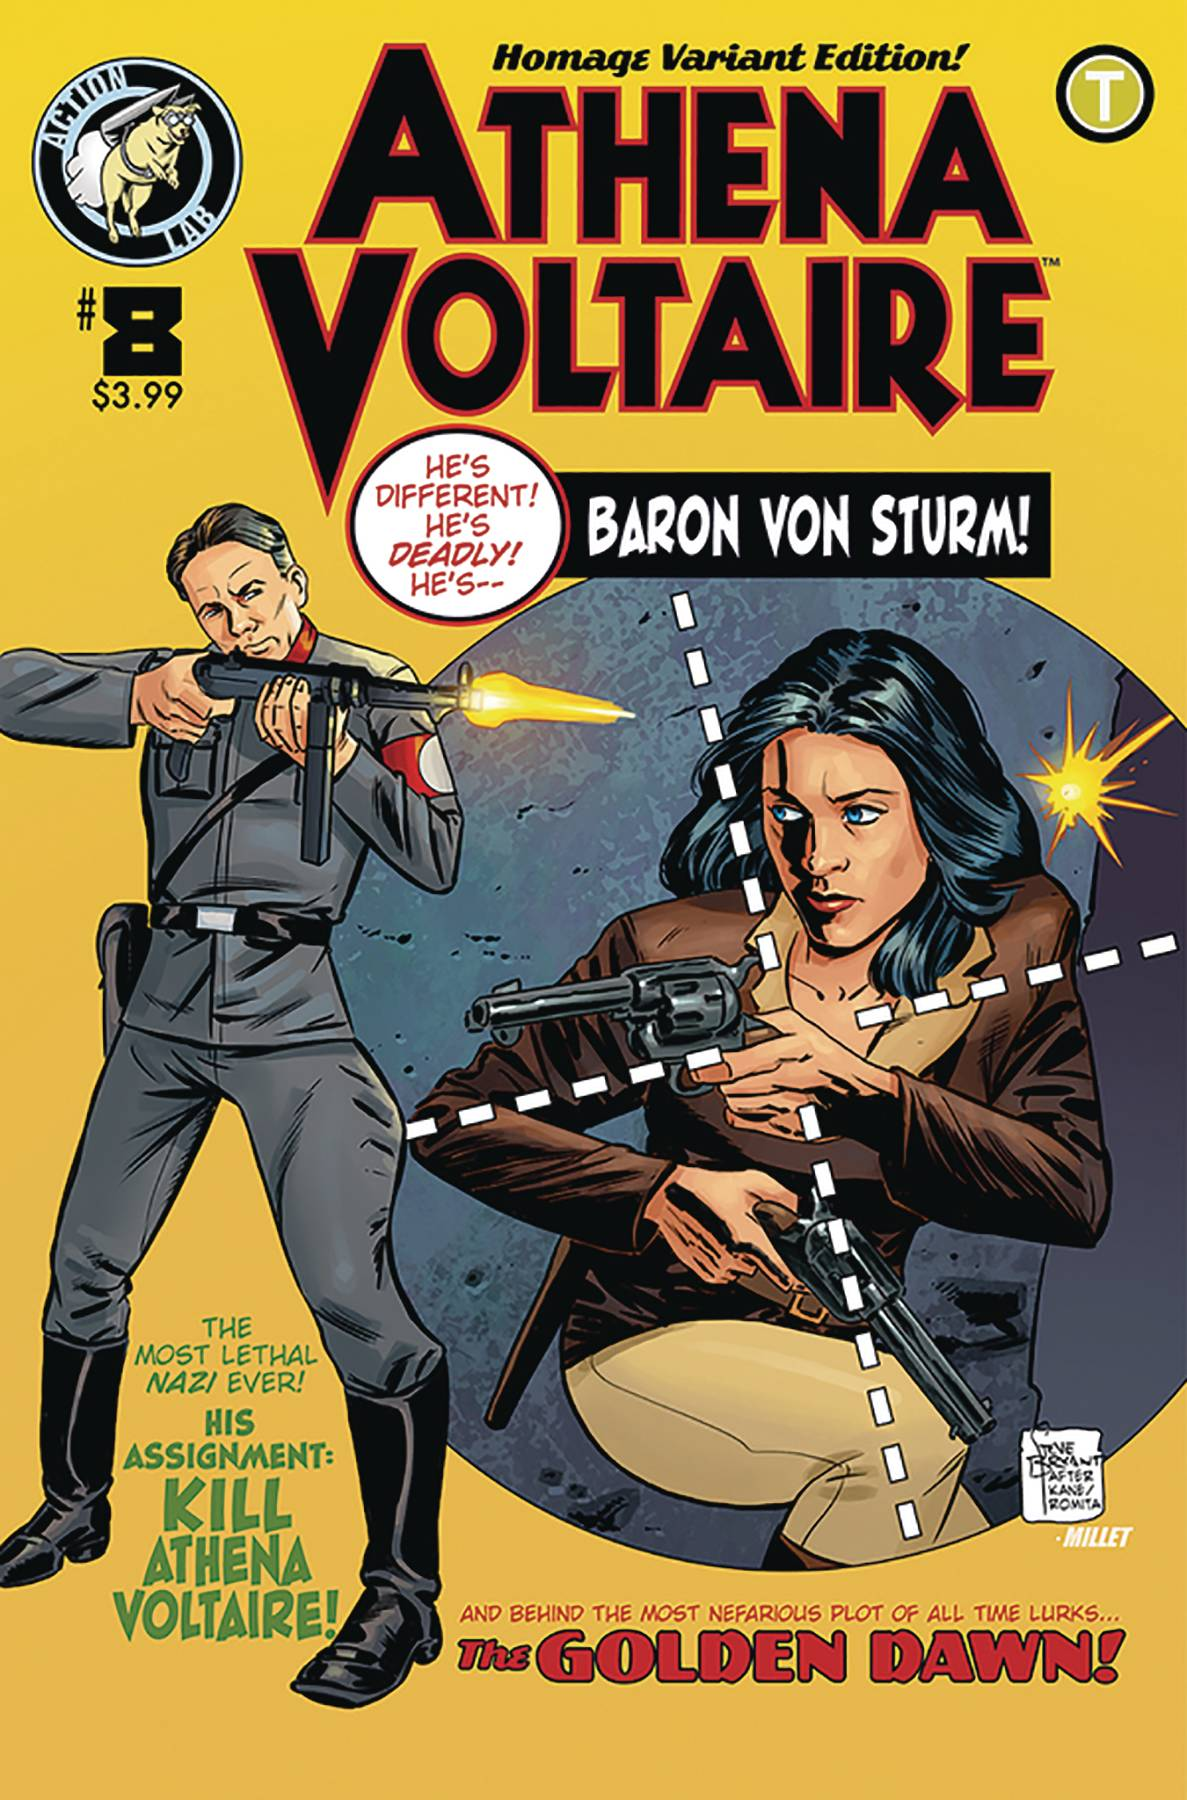 ATHENA VOLTAIRE 2018 ONGOING 8 CVR B BRYANT.jpg